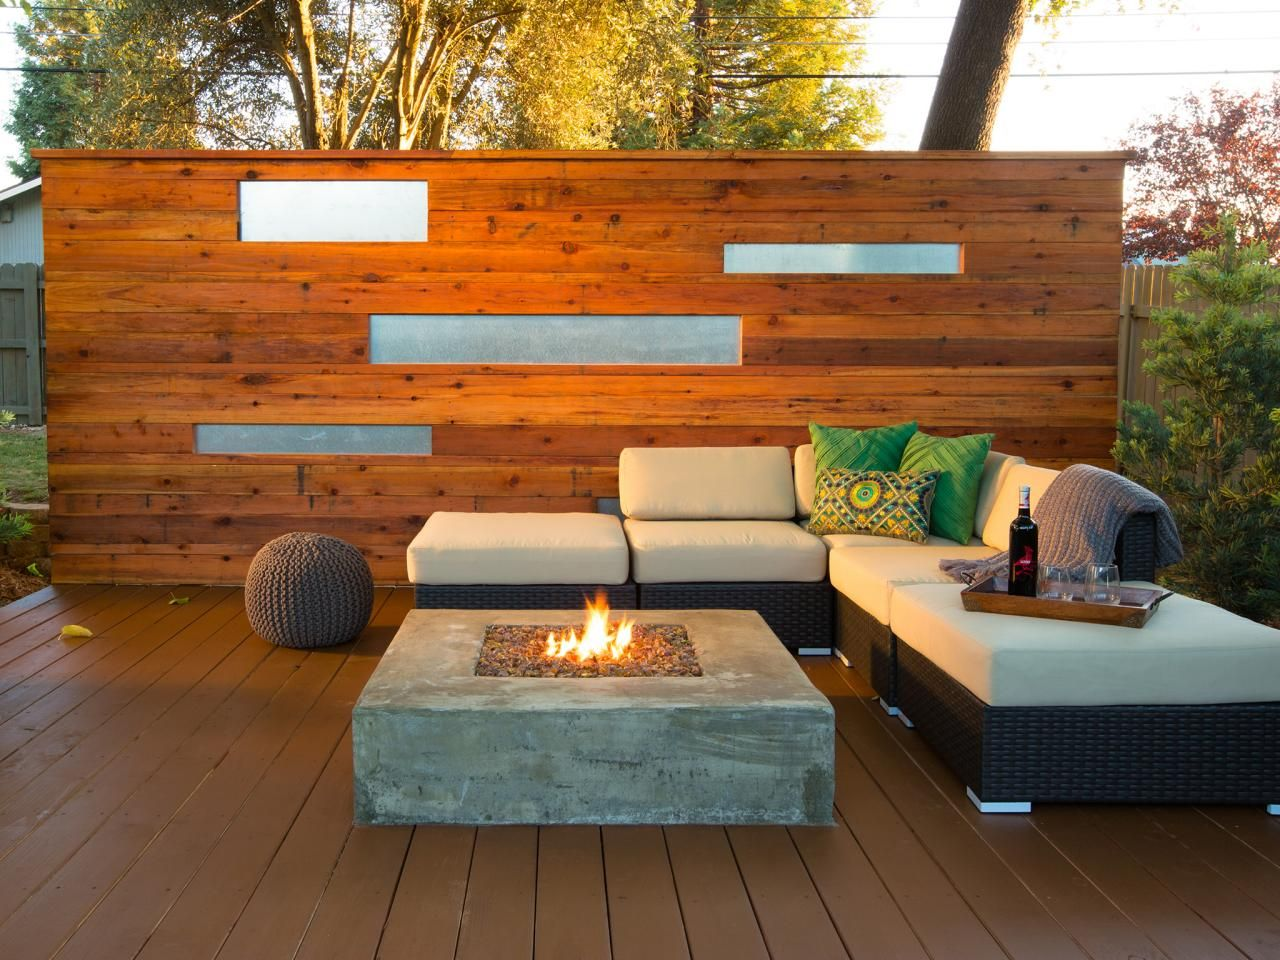 after the fire pit which sits atop a stained redwood deck and